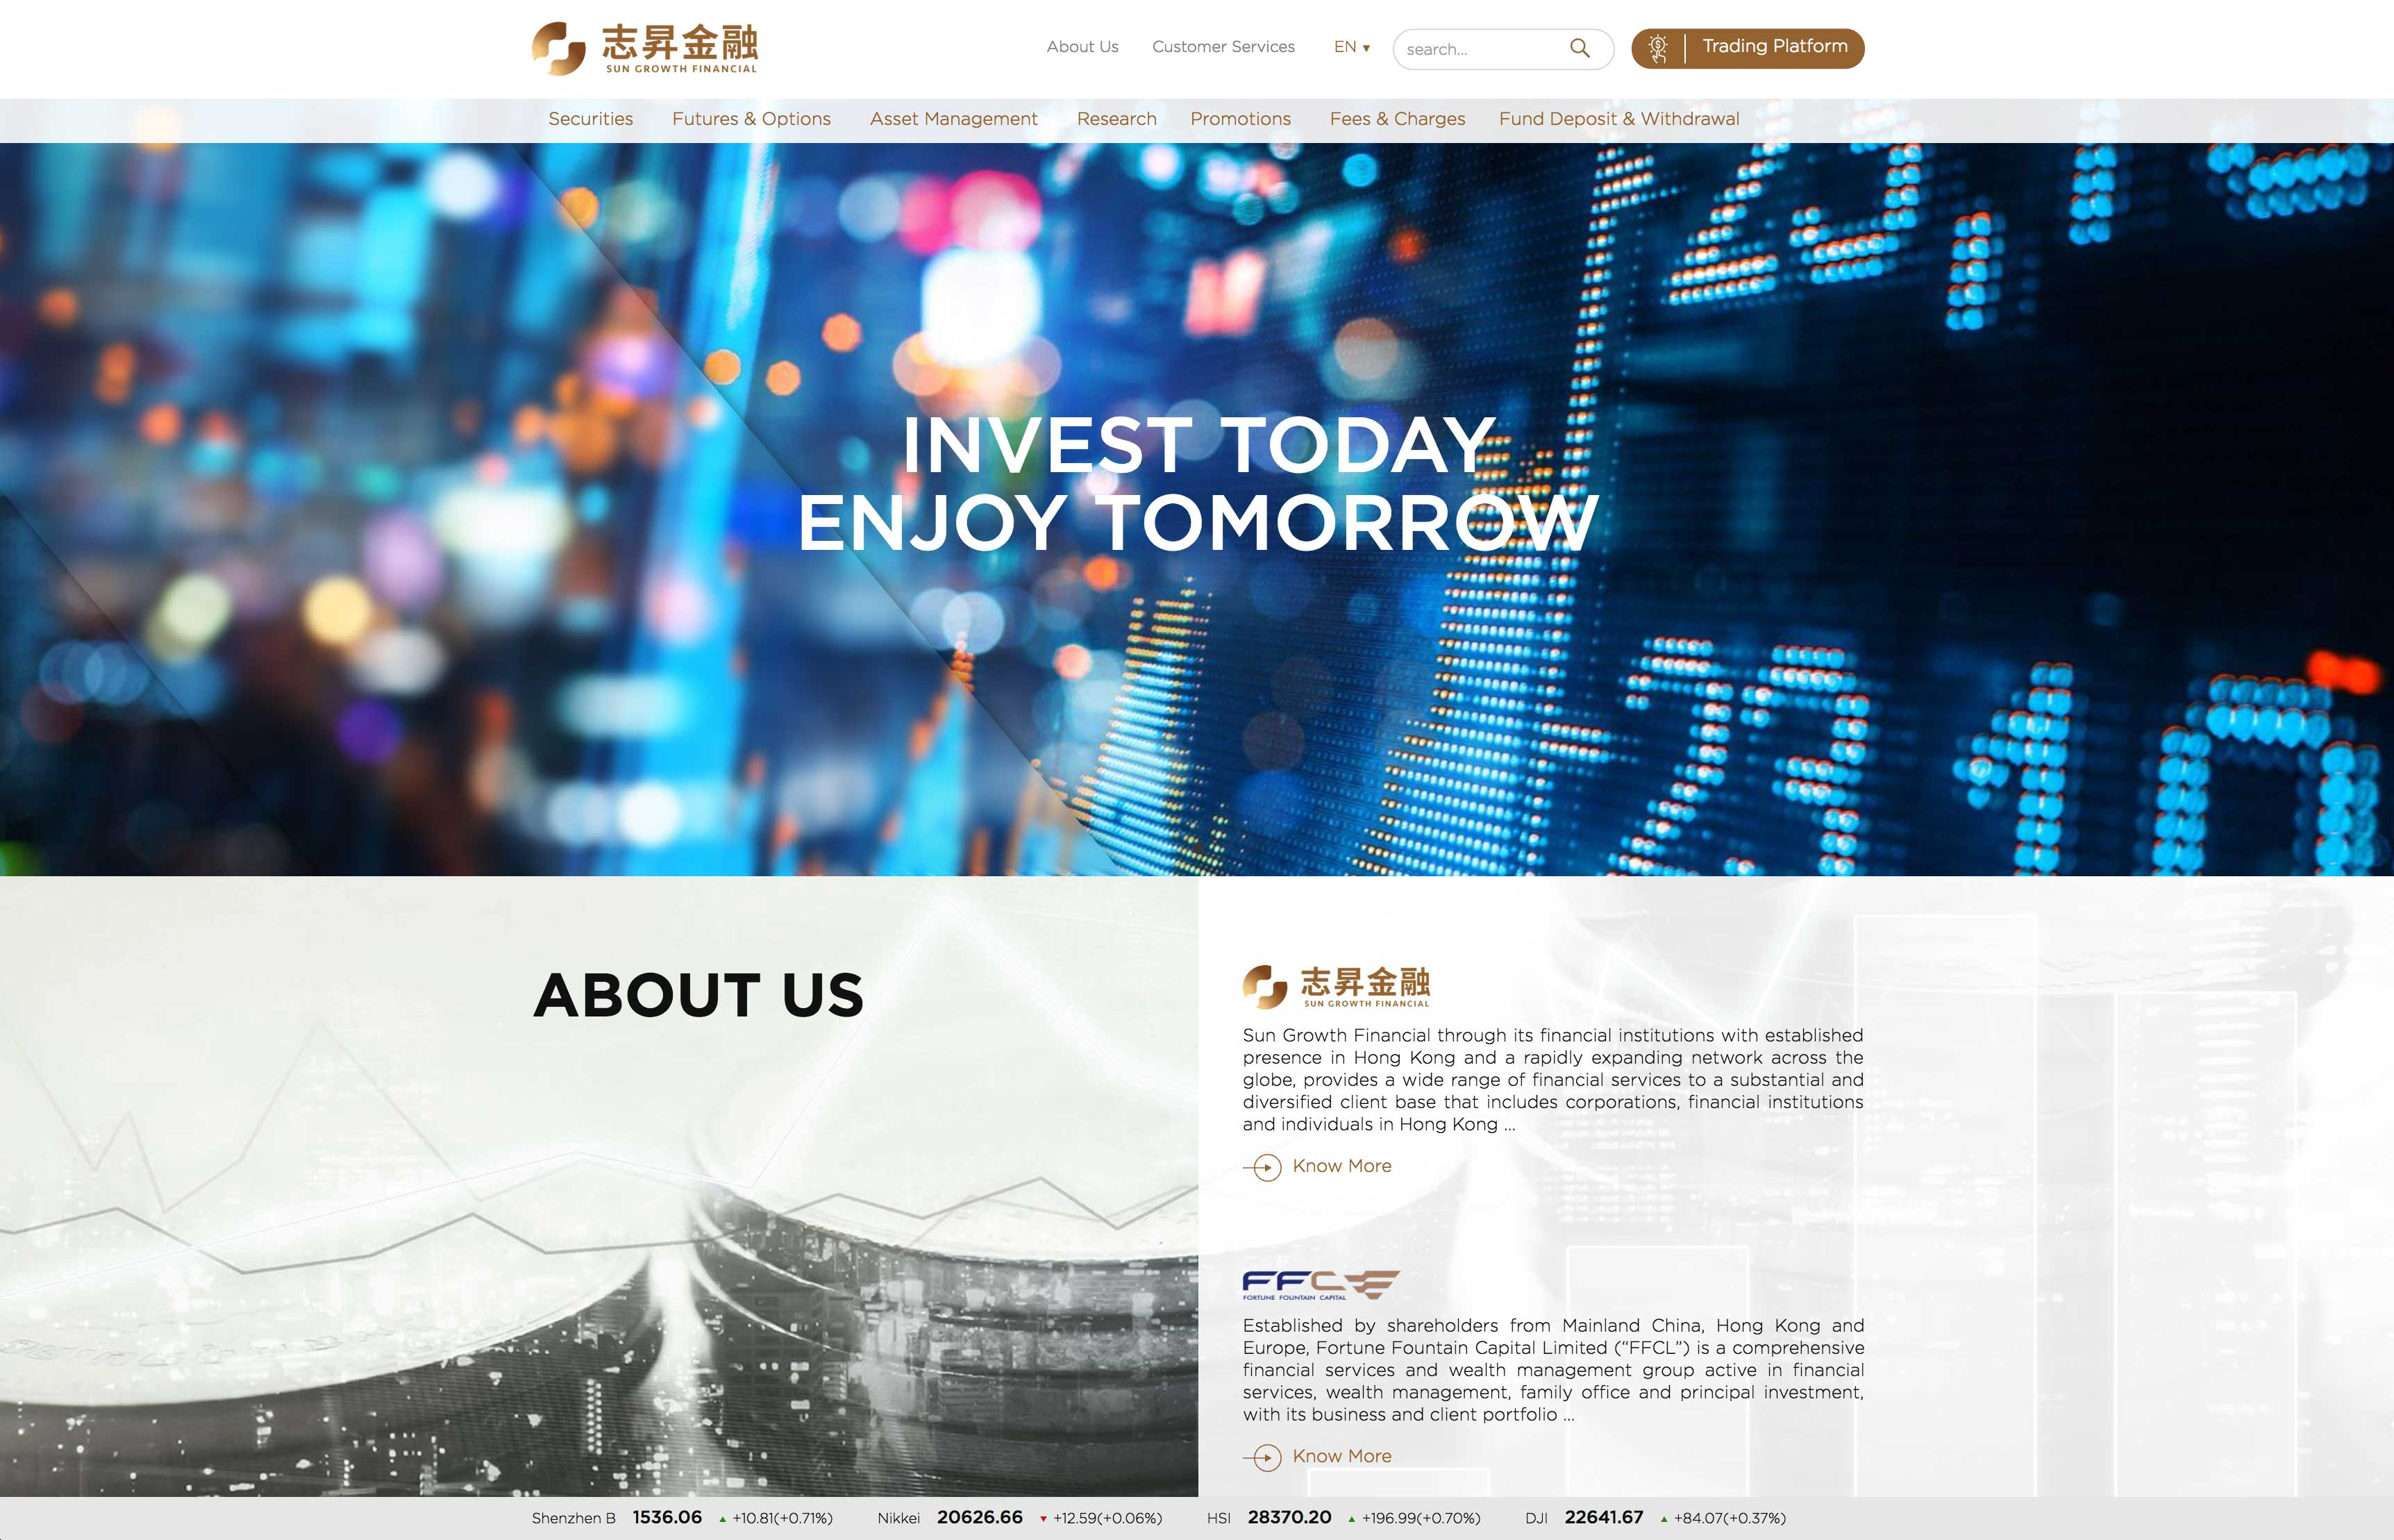 Sun Growth Securities Limited